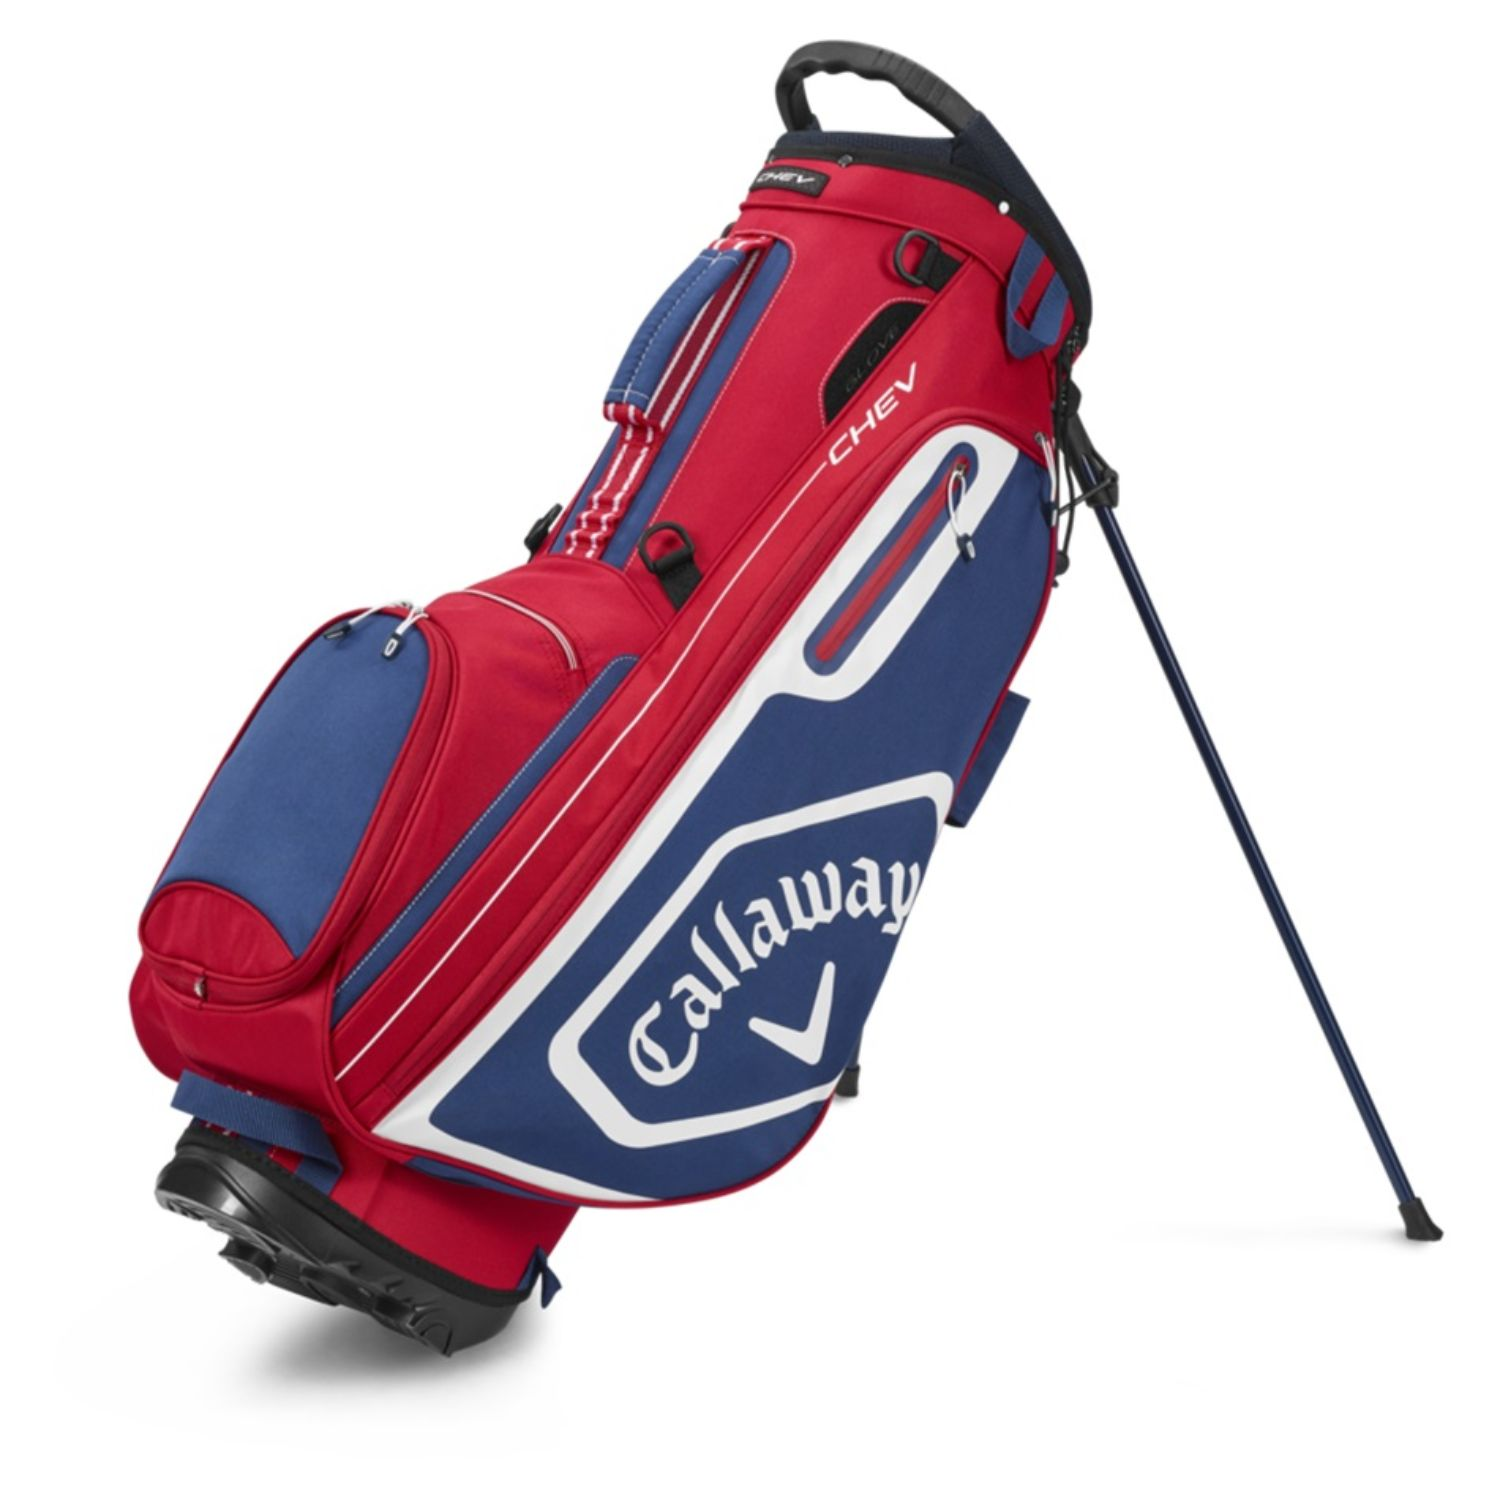 Callaway Golf 2020 Chev Stand Bag-Red-White-Navy